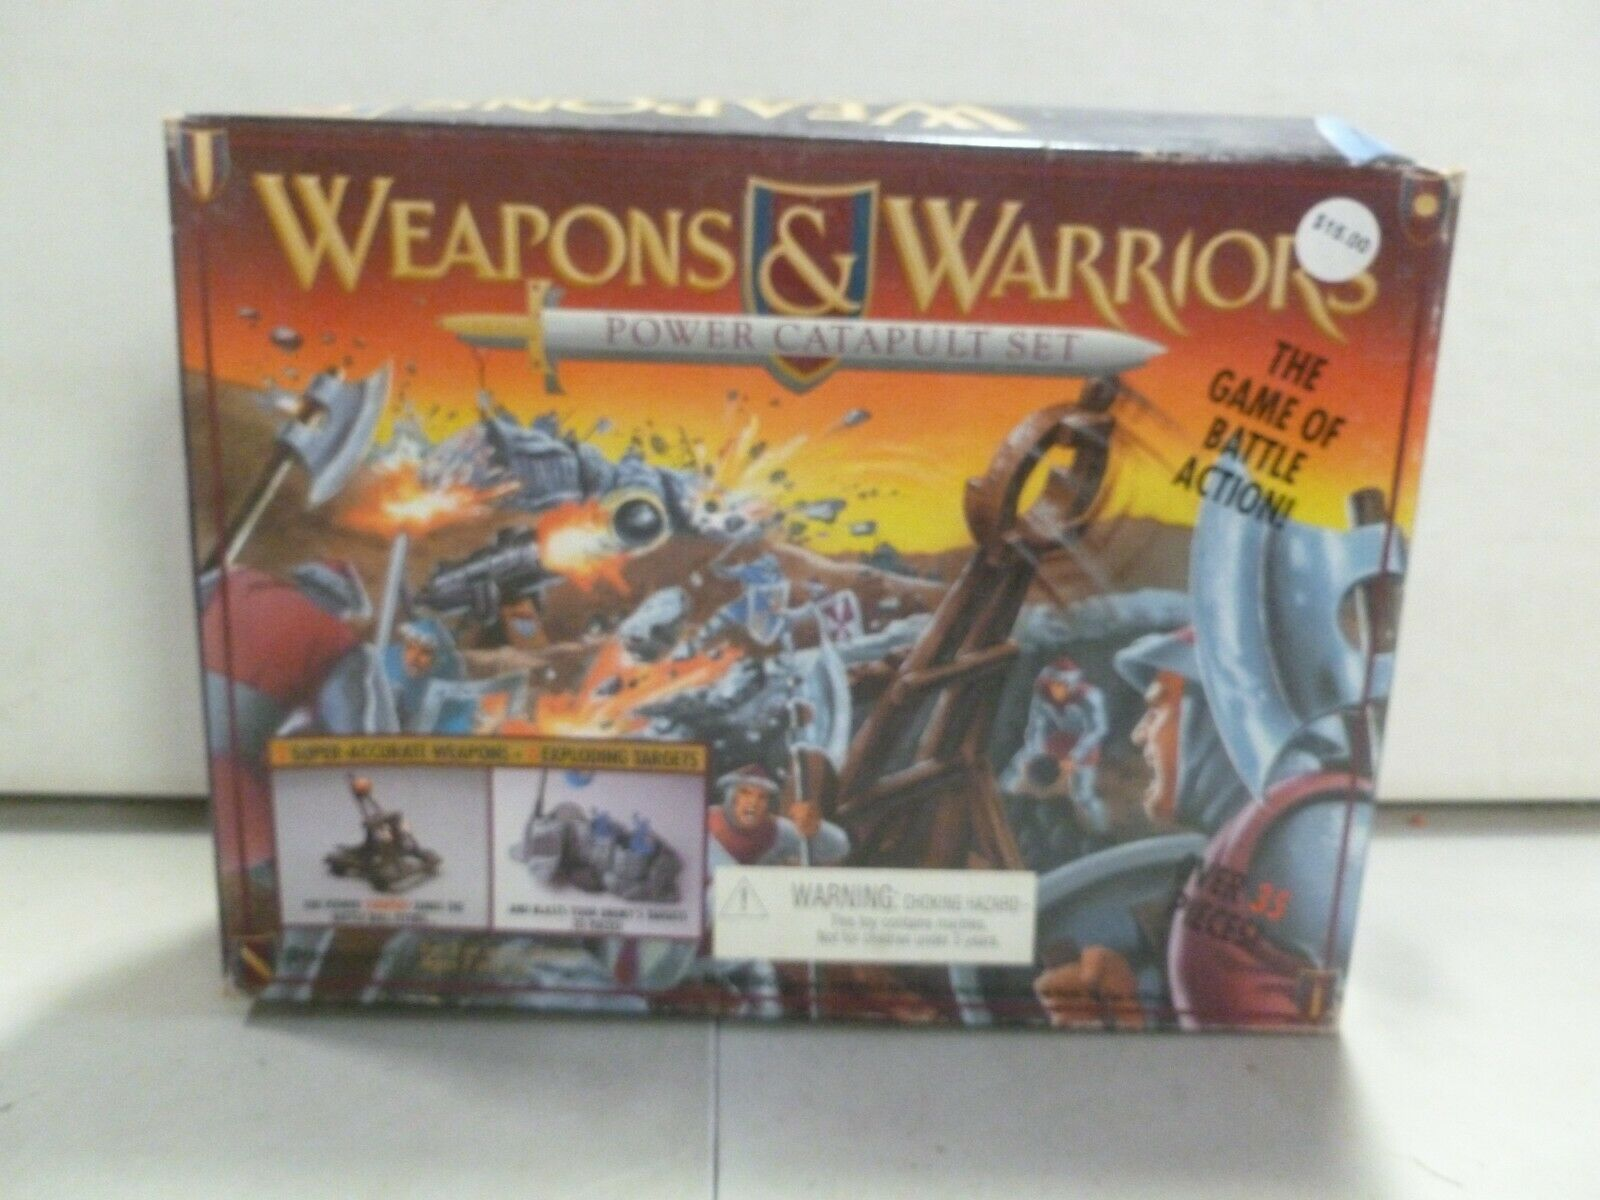 1995 Pressman Weapons and Warriors Power Catapult Set (1)